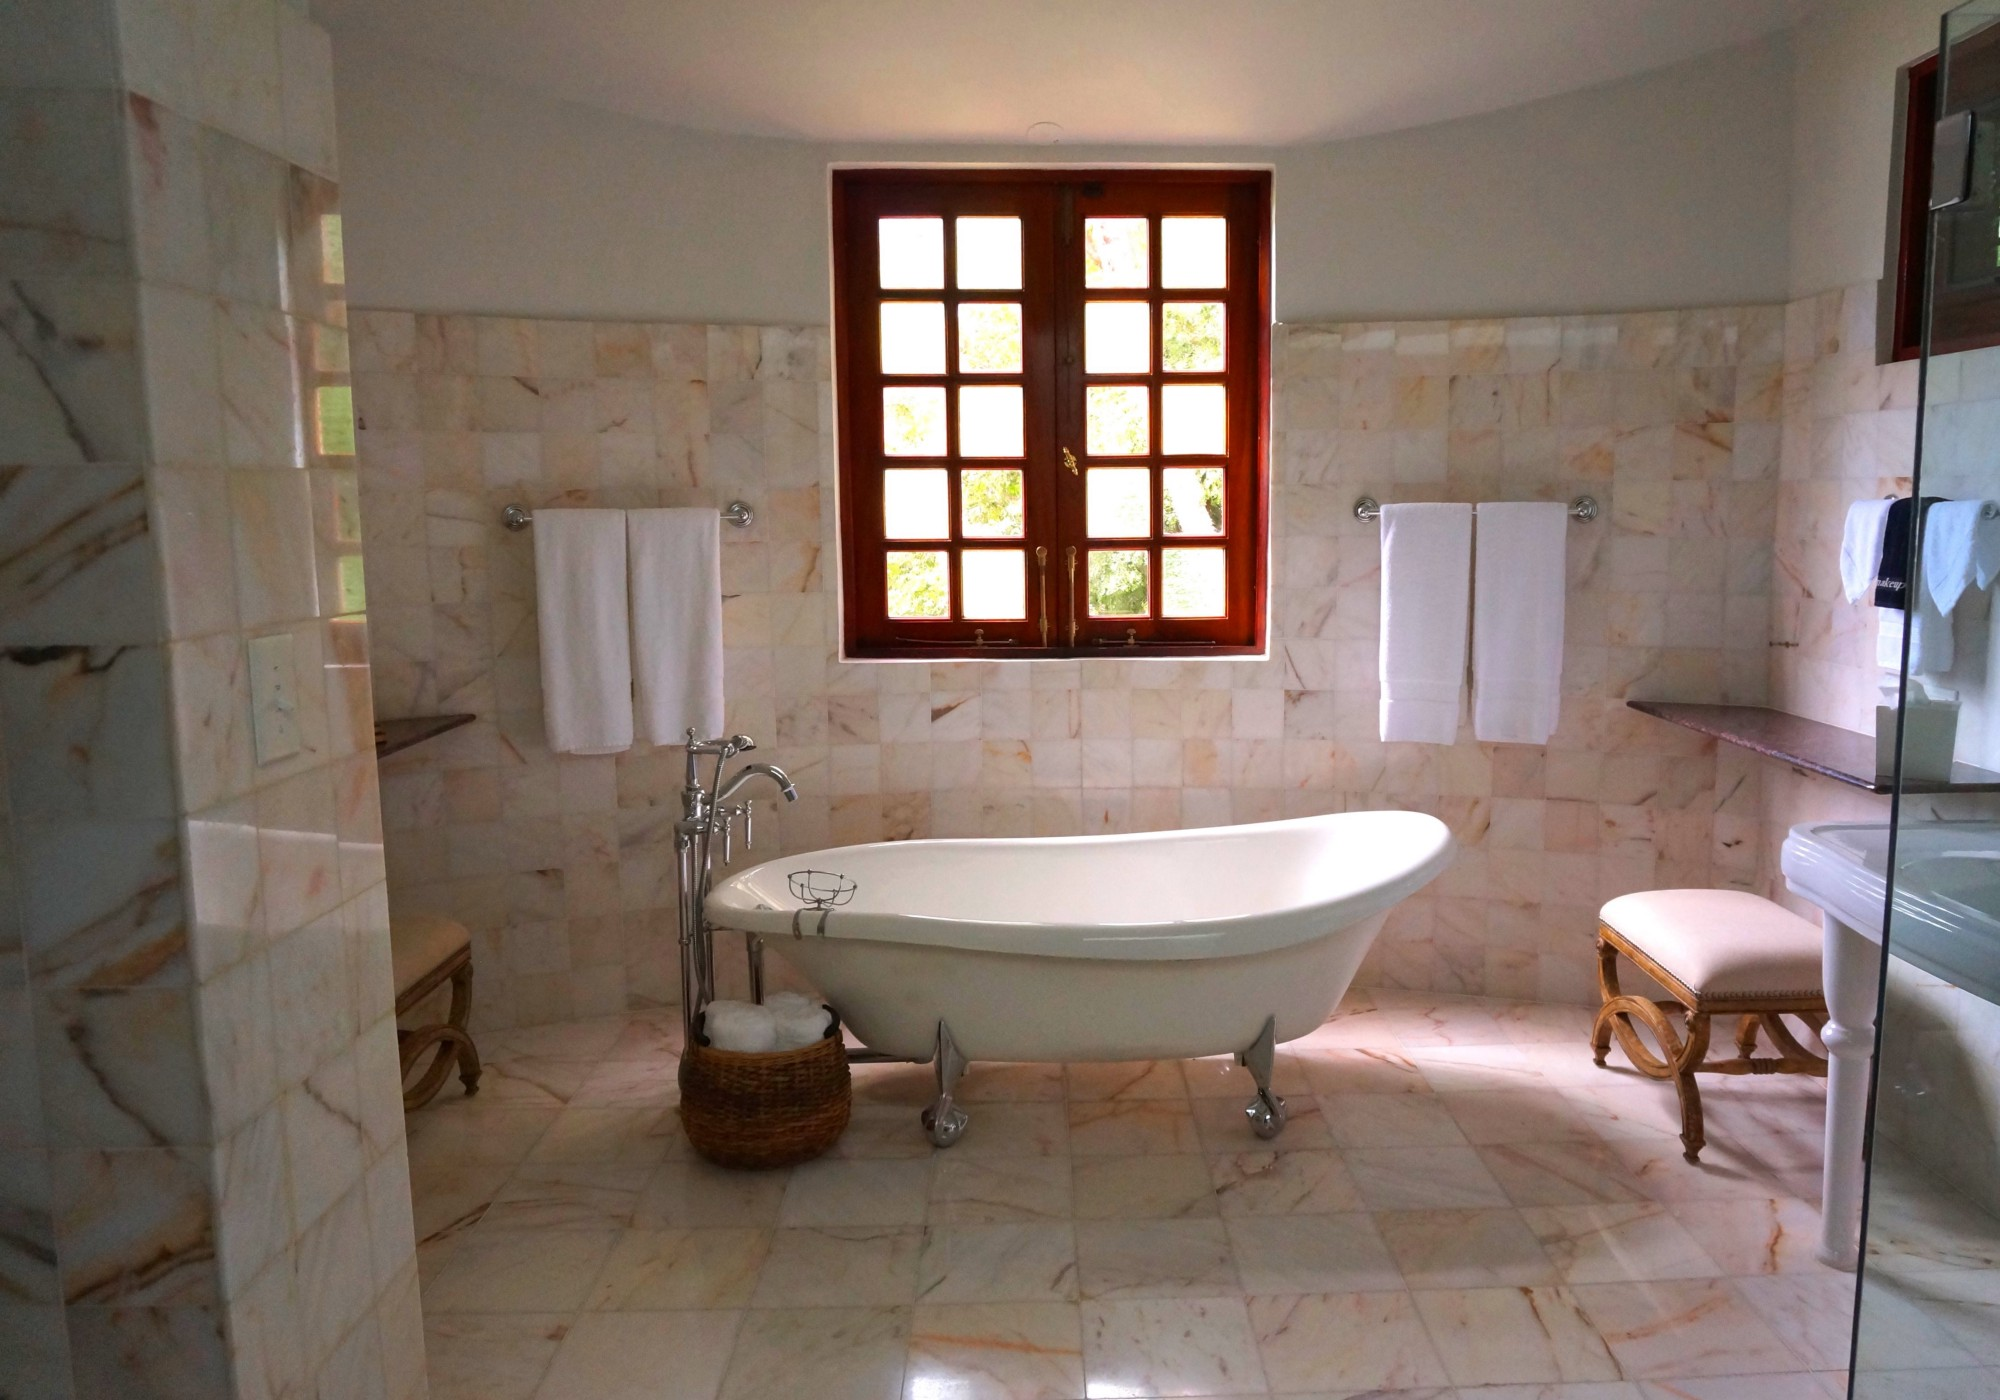 A picture of a bathtub